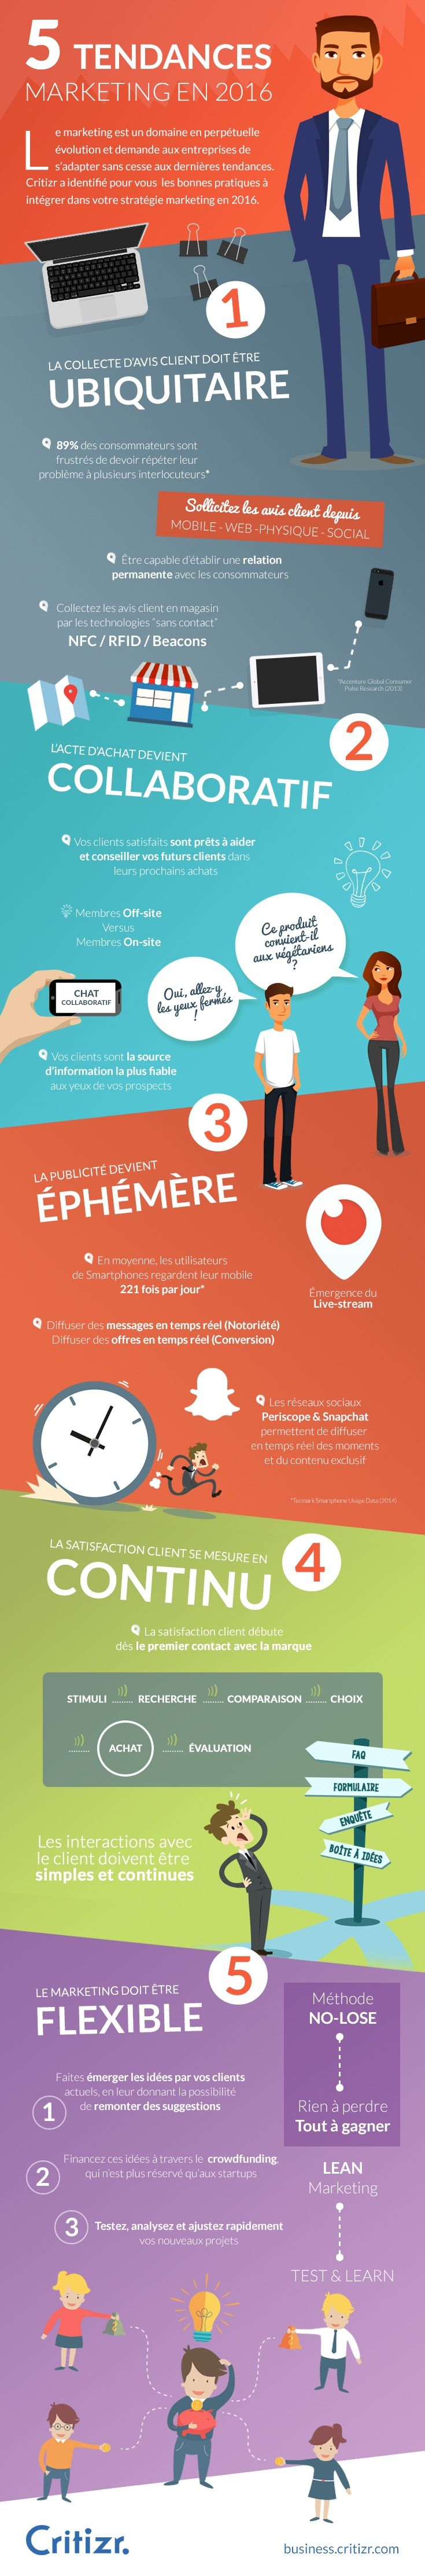 [Infographie] 5 tendances Marketing en 2016